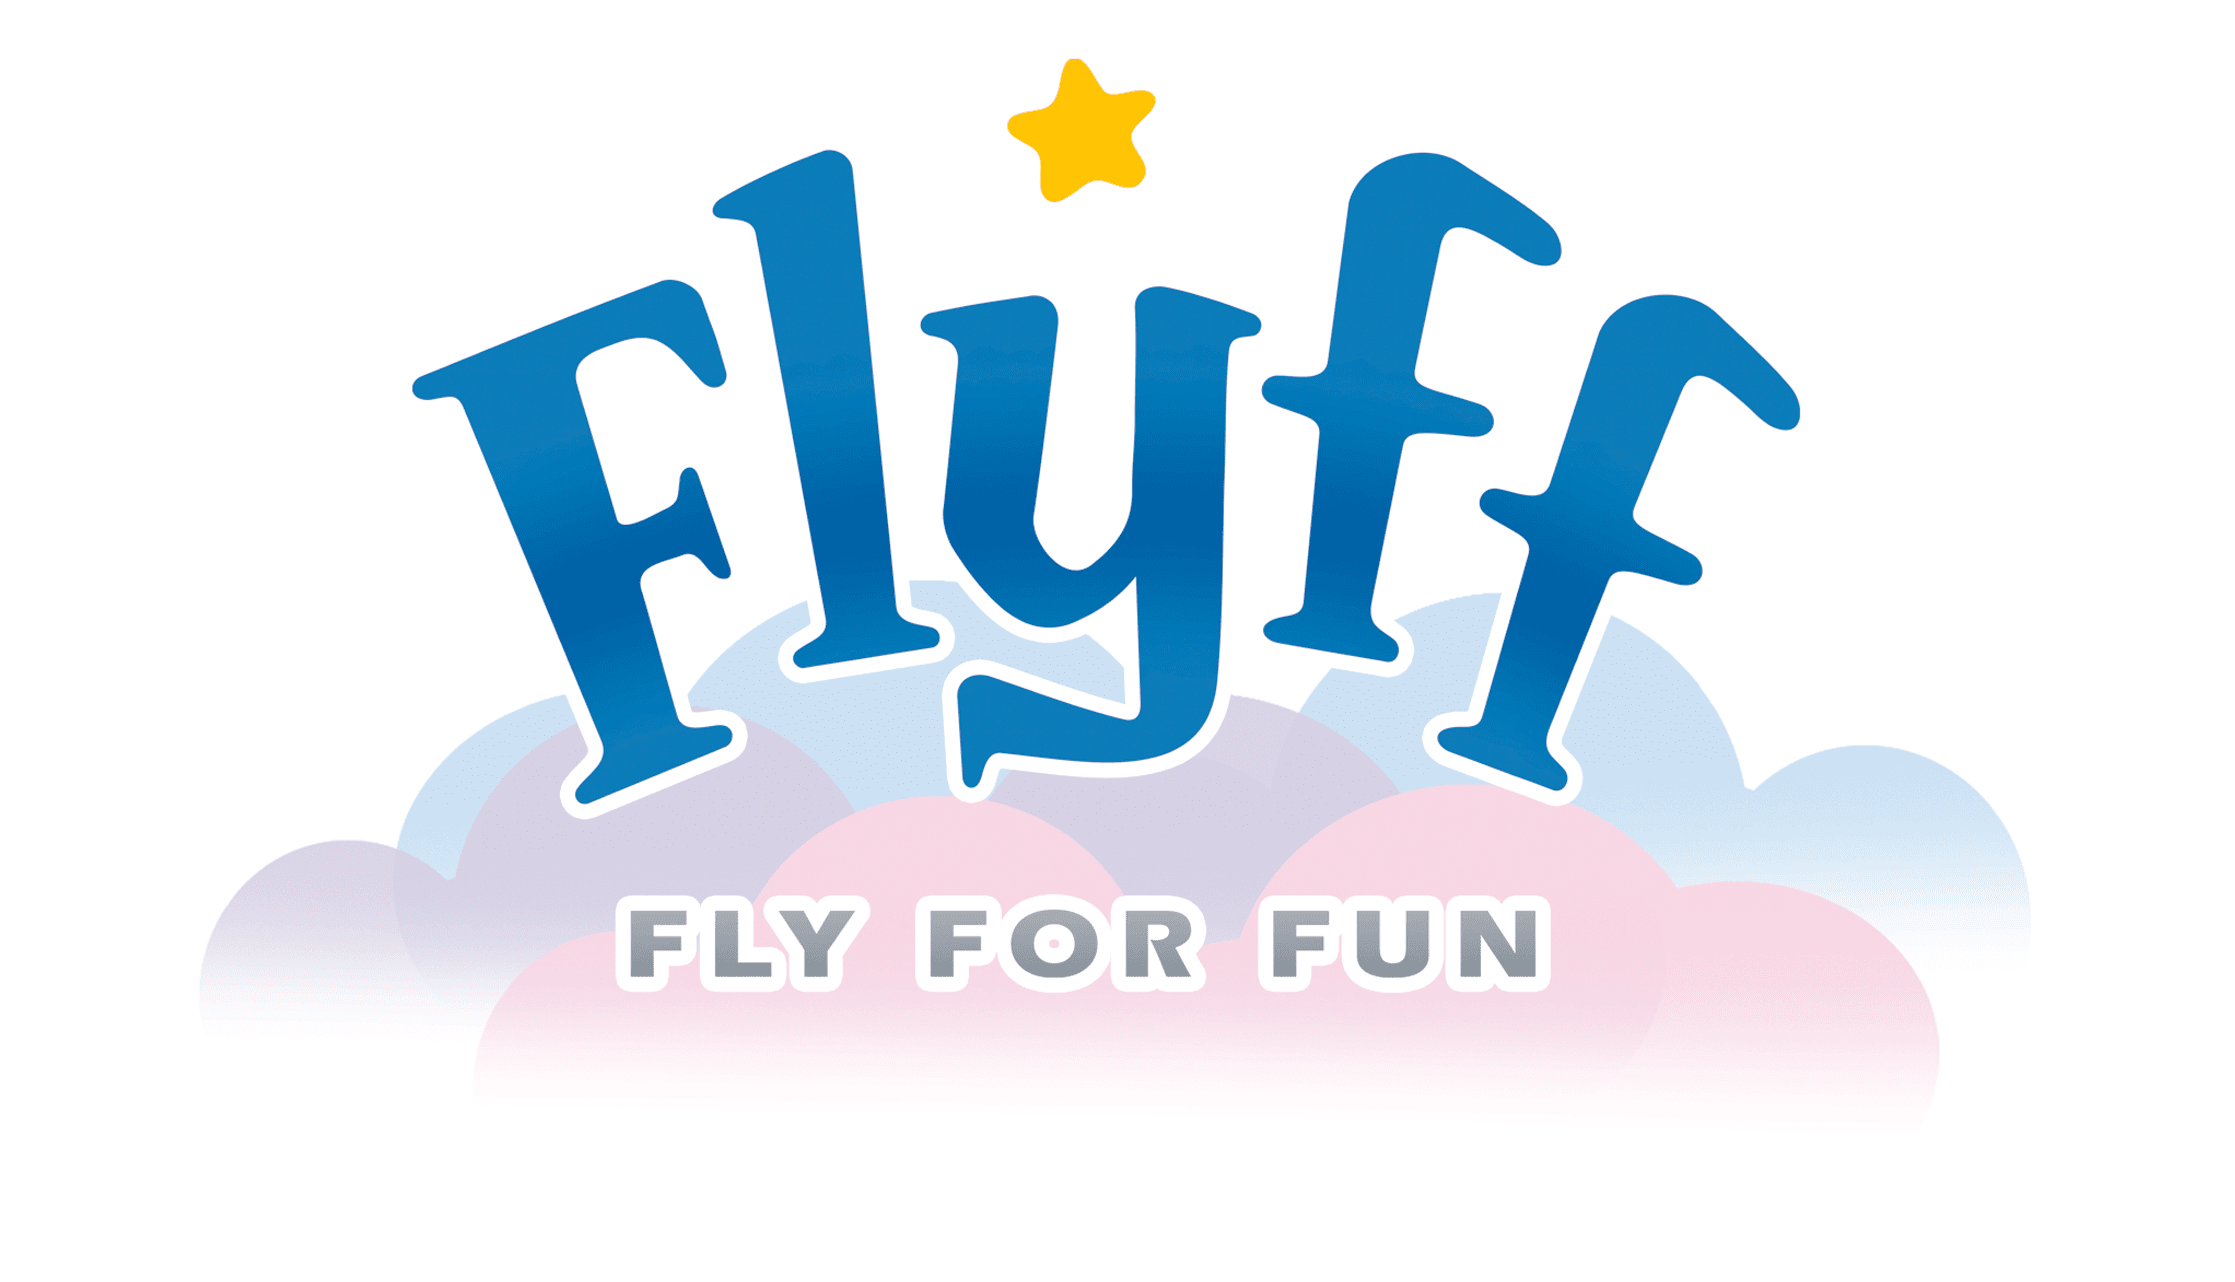 Flyff: Fly for Fun